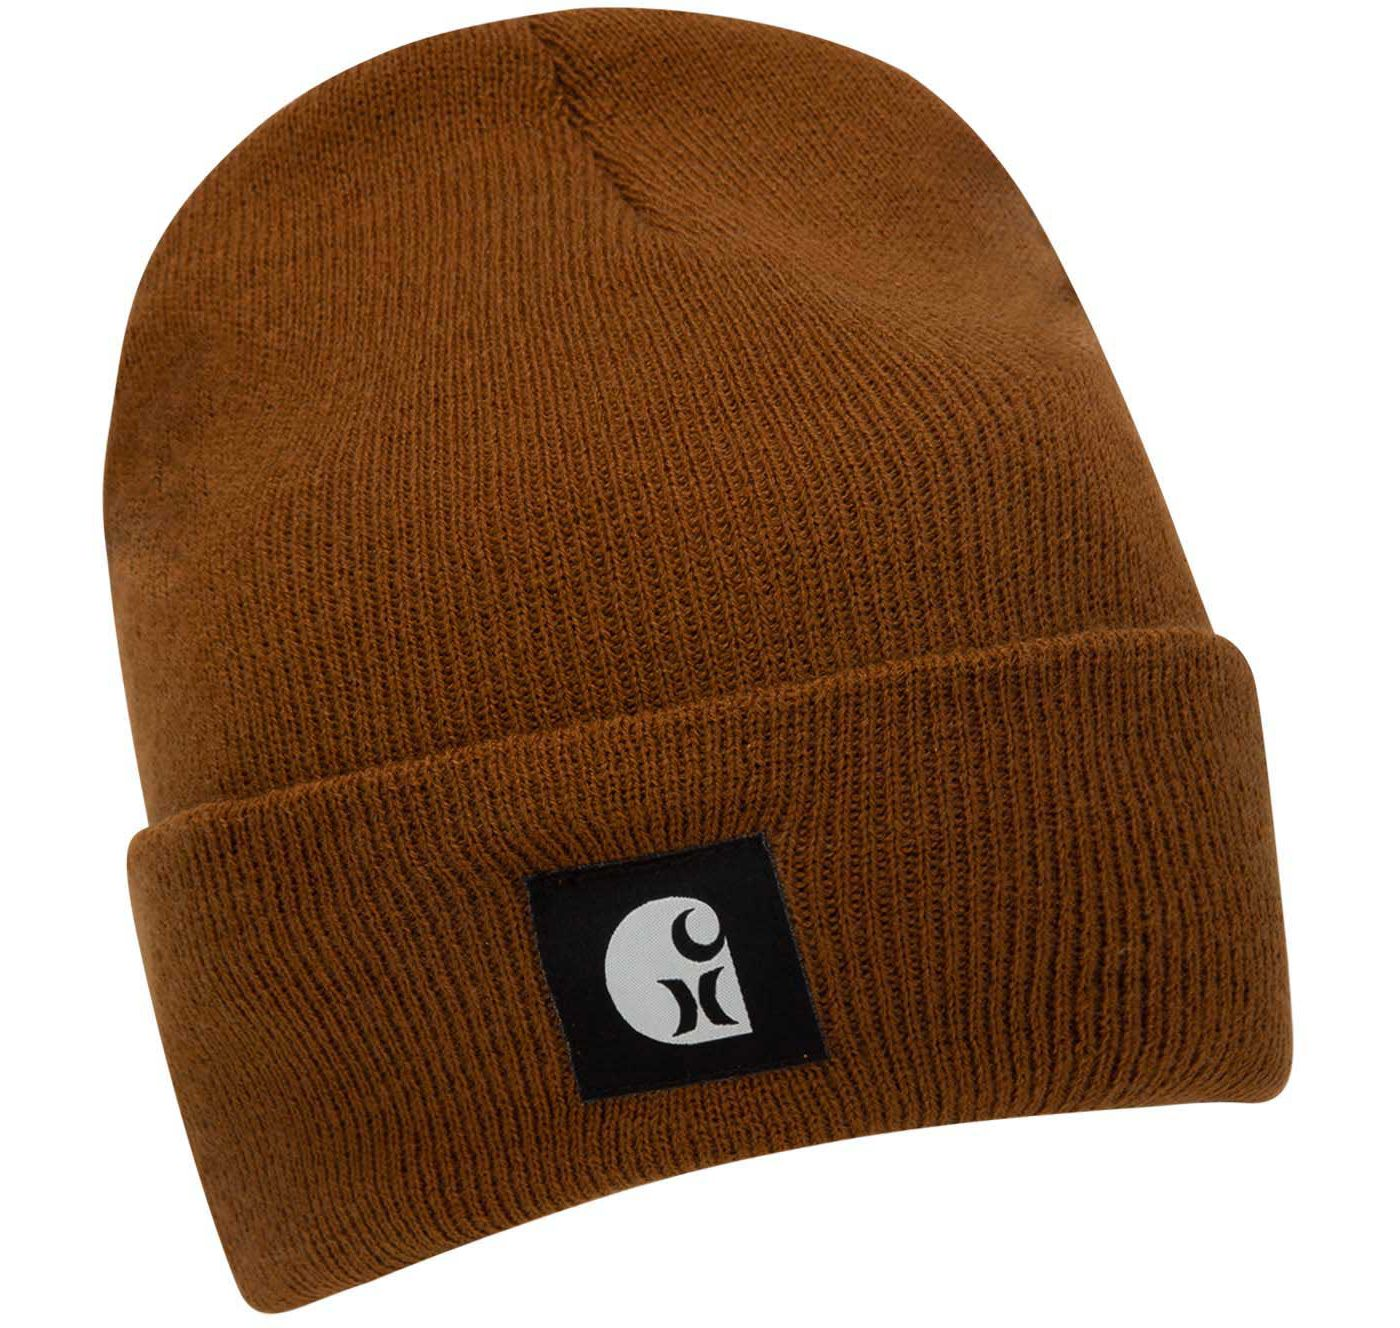 Hurley Men's Carhartt Watch Beanie